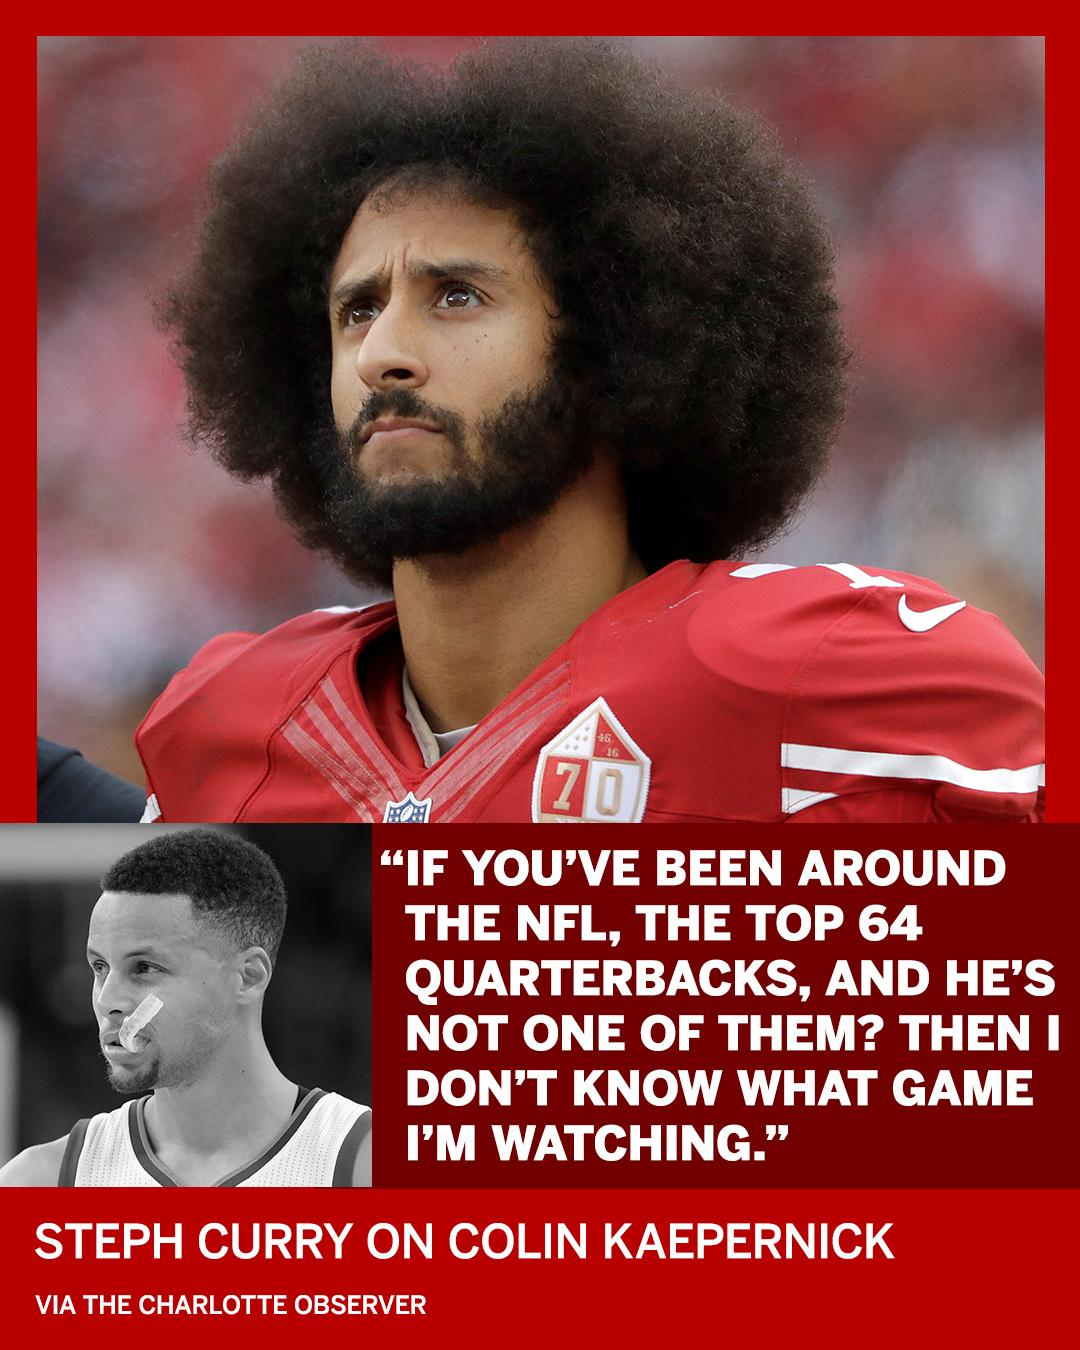 Colin Kaepernick has Steph Curry's support. https://t.co/9UPBgi3cFI